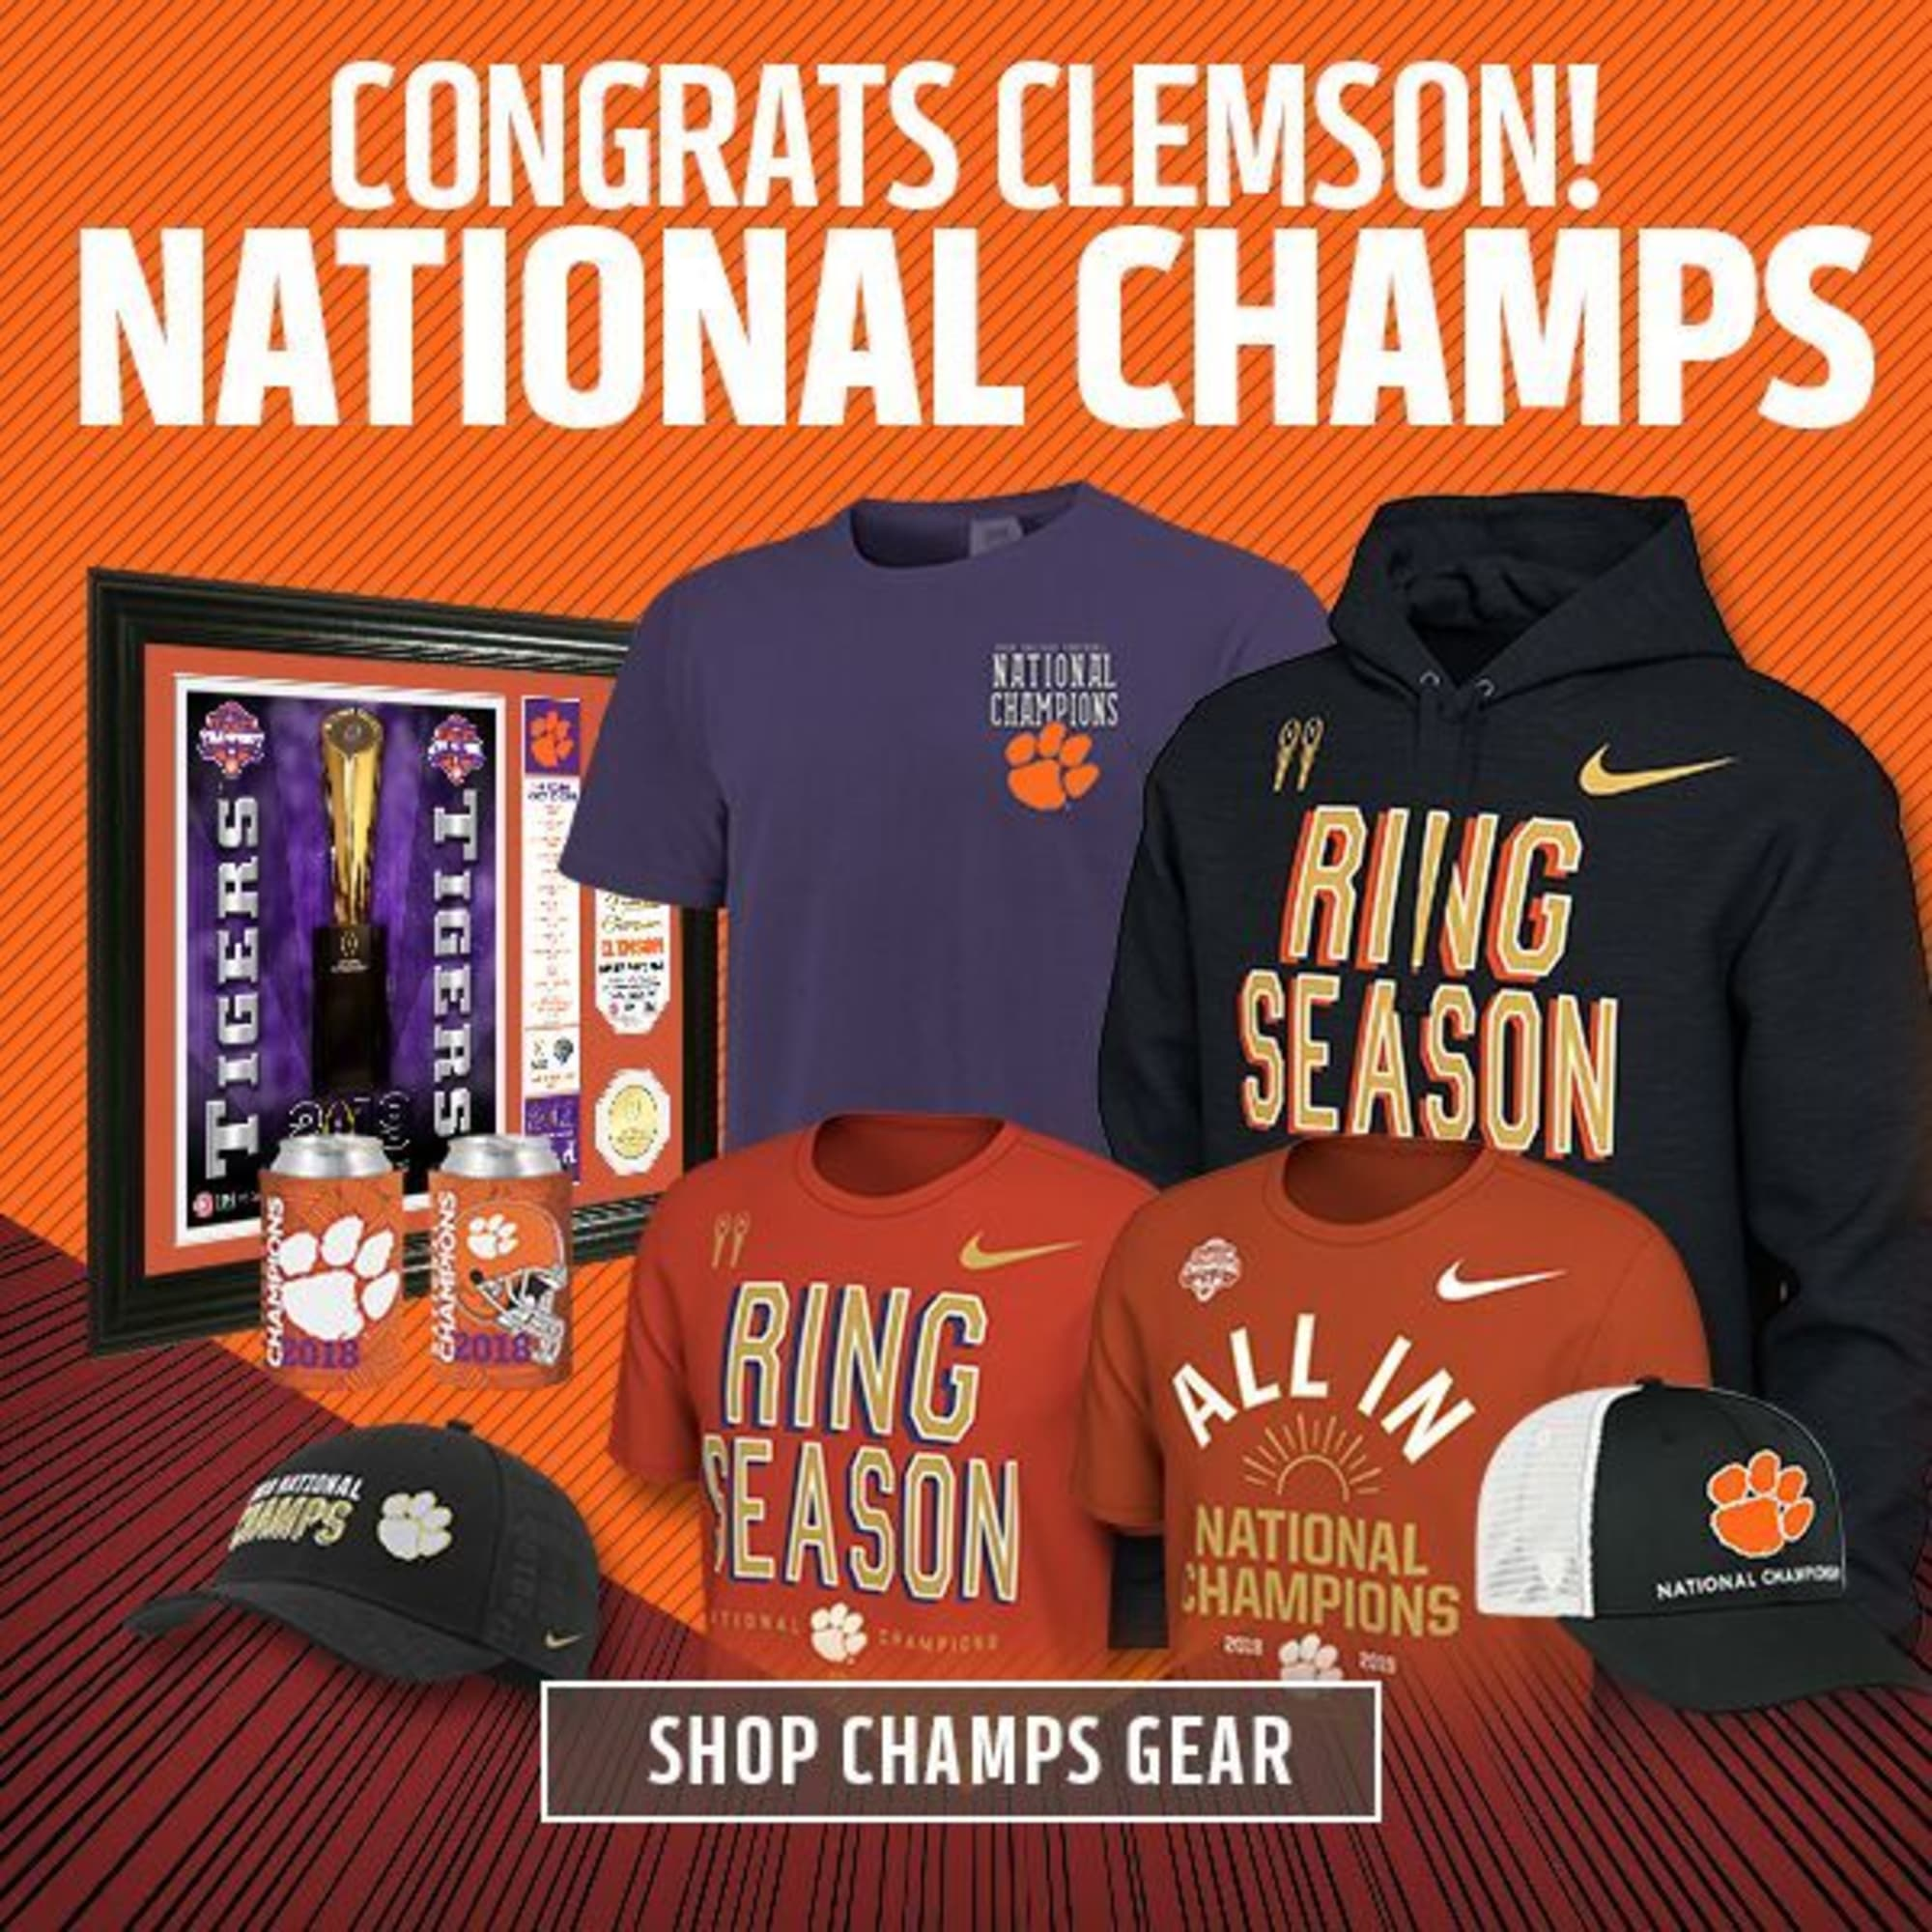 The Clemson Tigers are National Champions. Time to gear up.